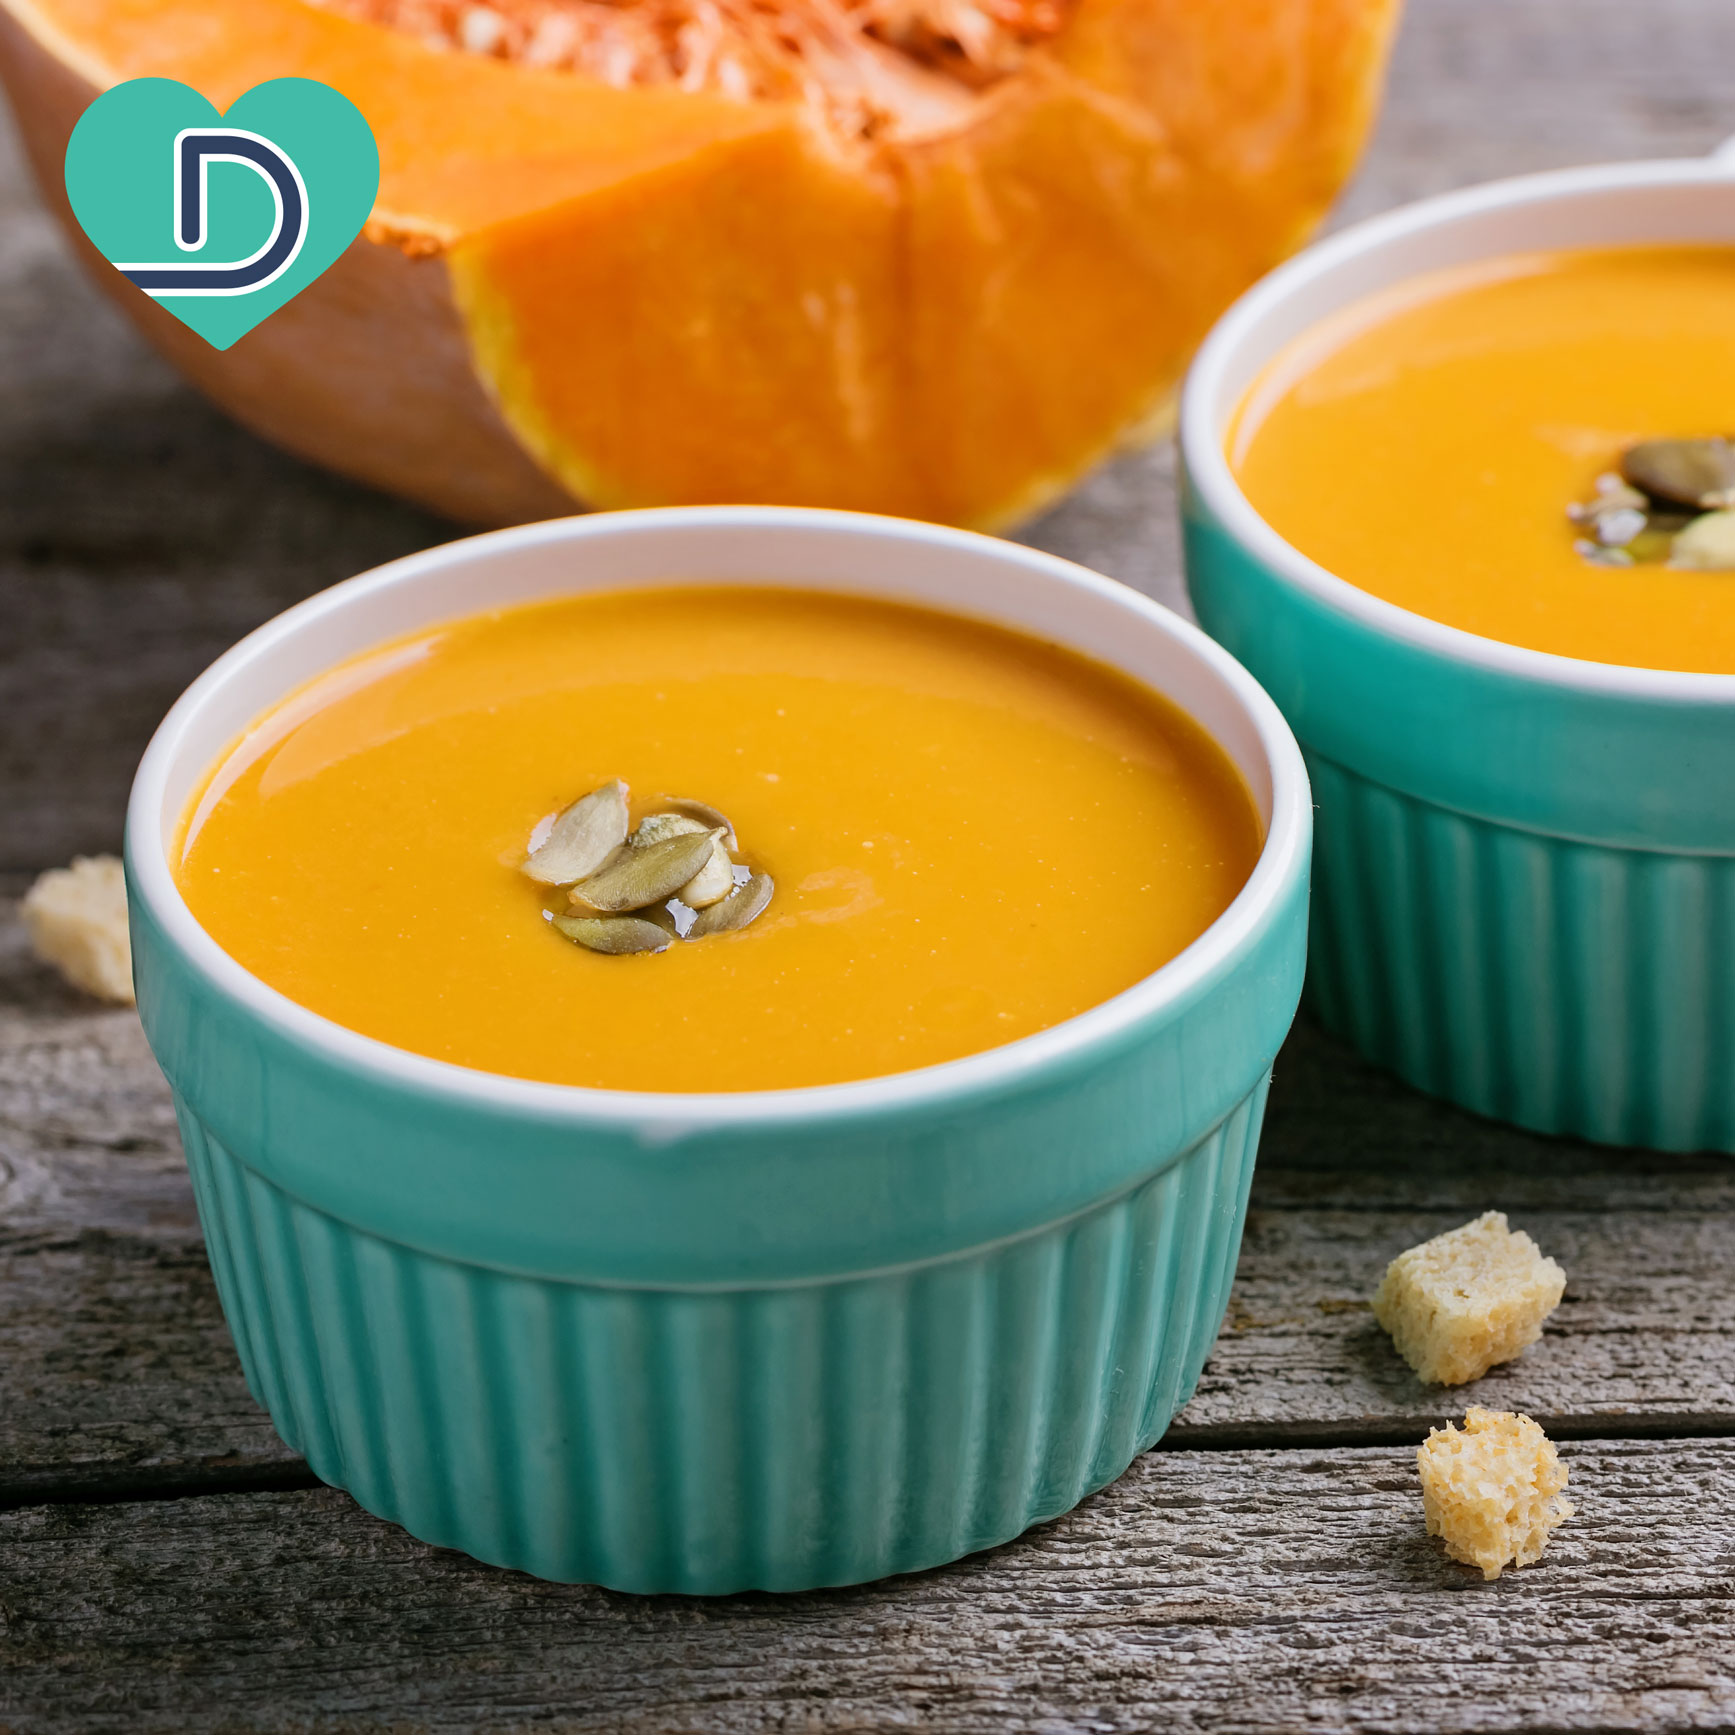 Dr. Dave's Ultimate Butternut Squash Soup